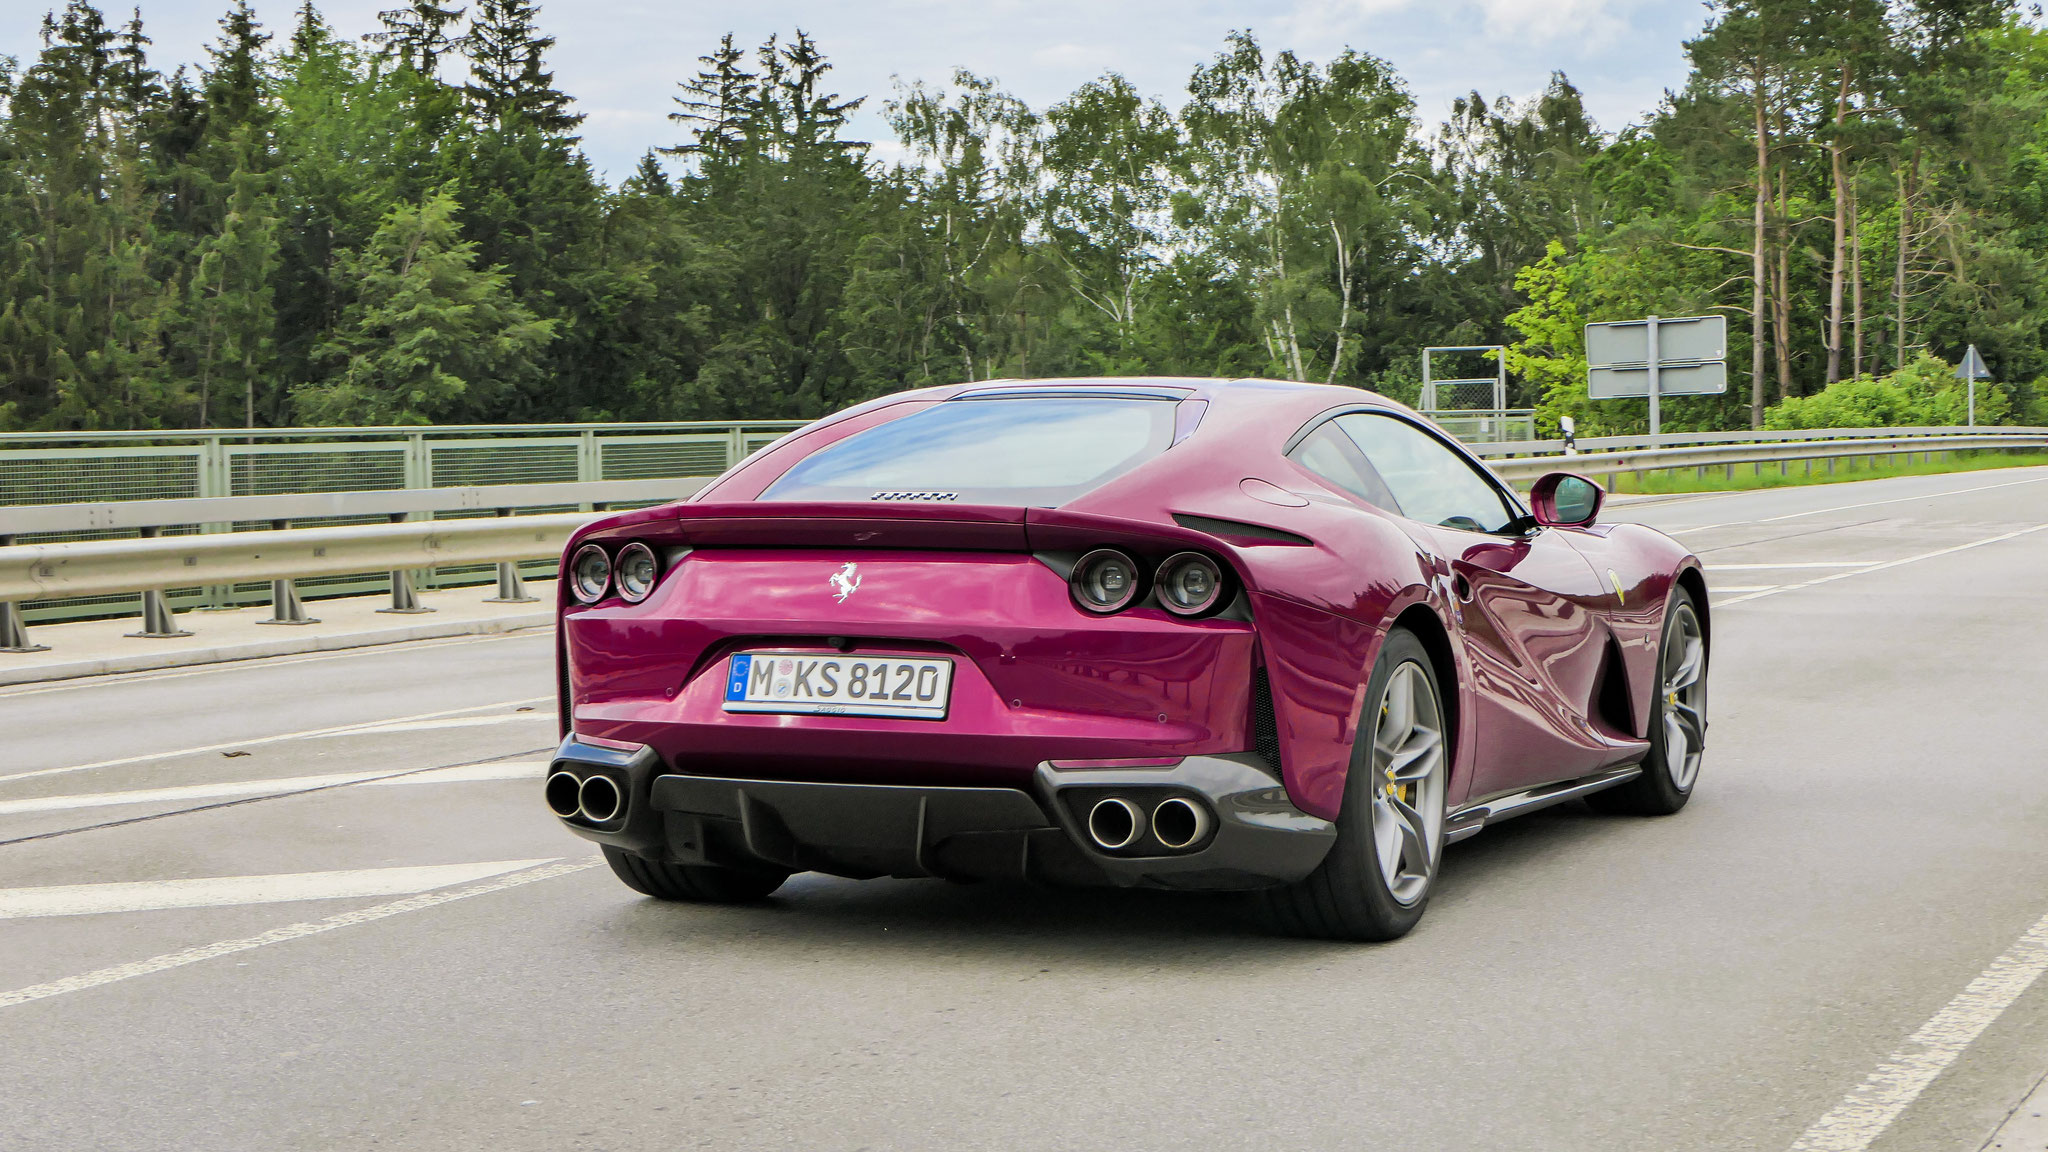 Ferrari 812 Superfast - M-KS-8120